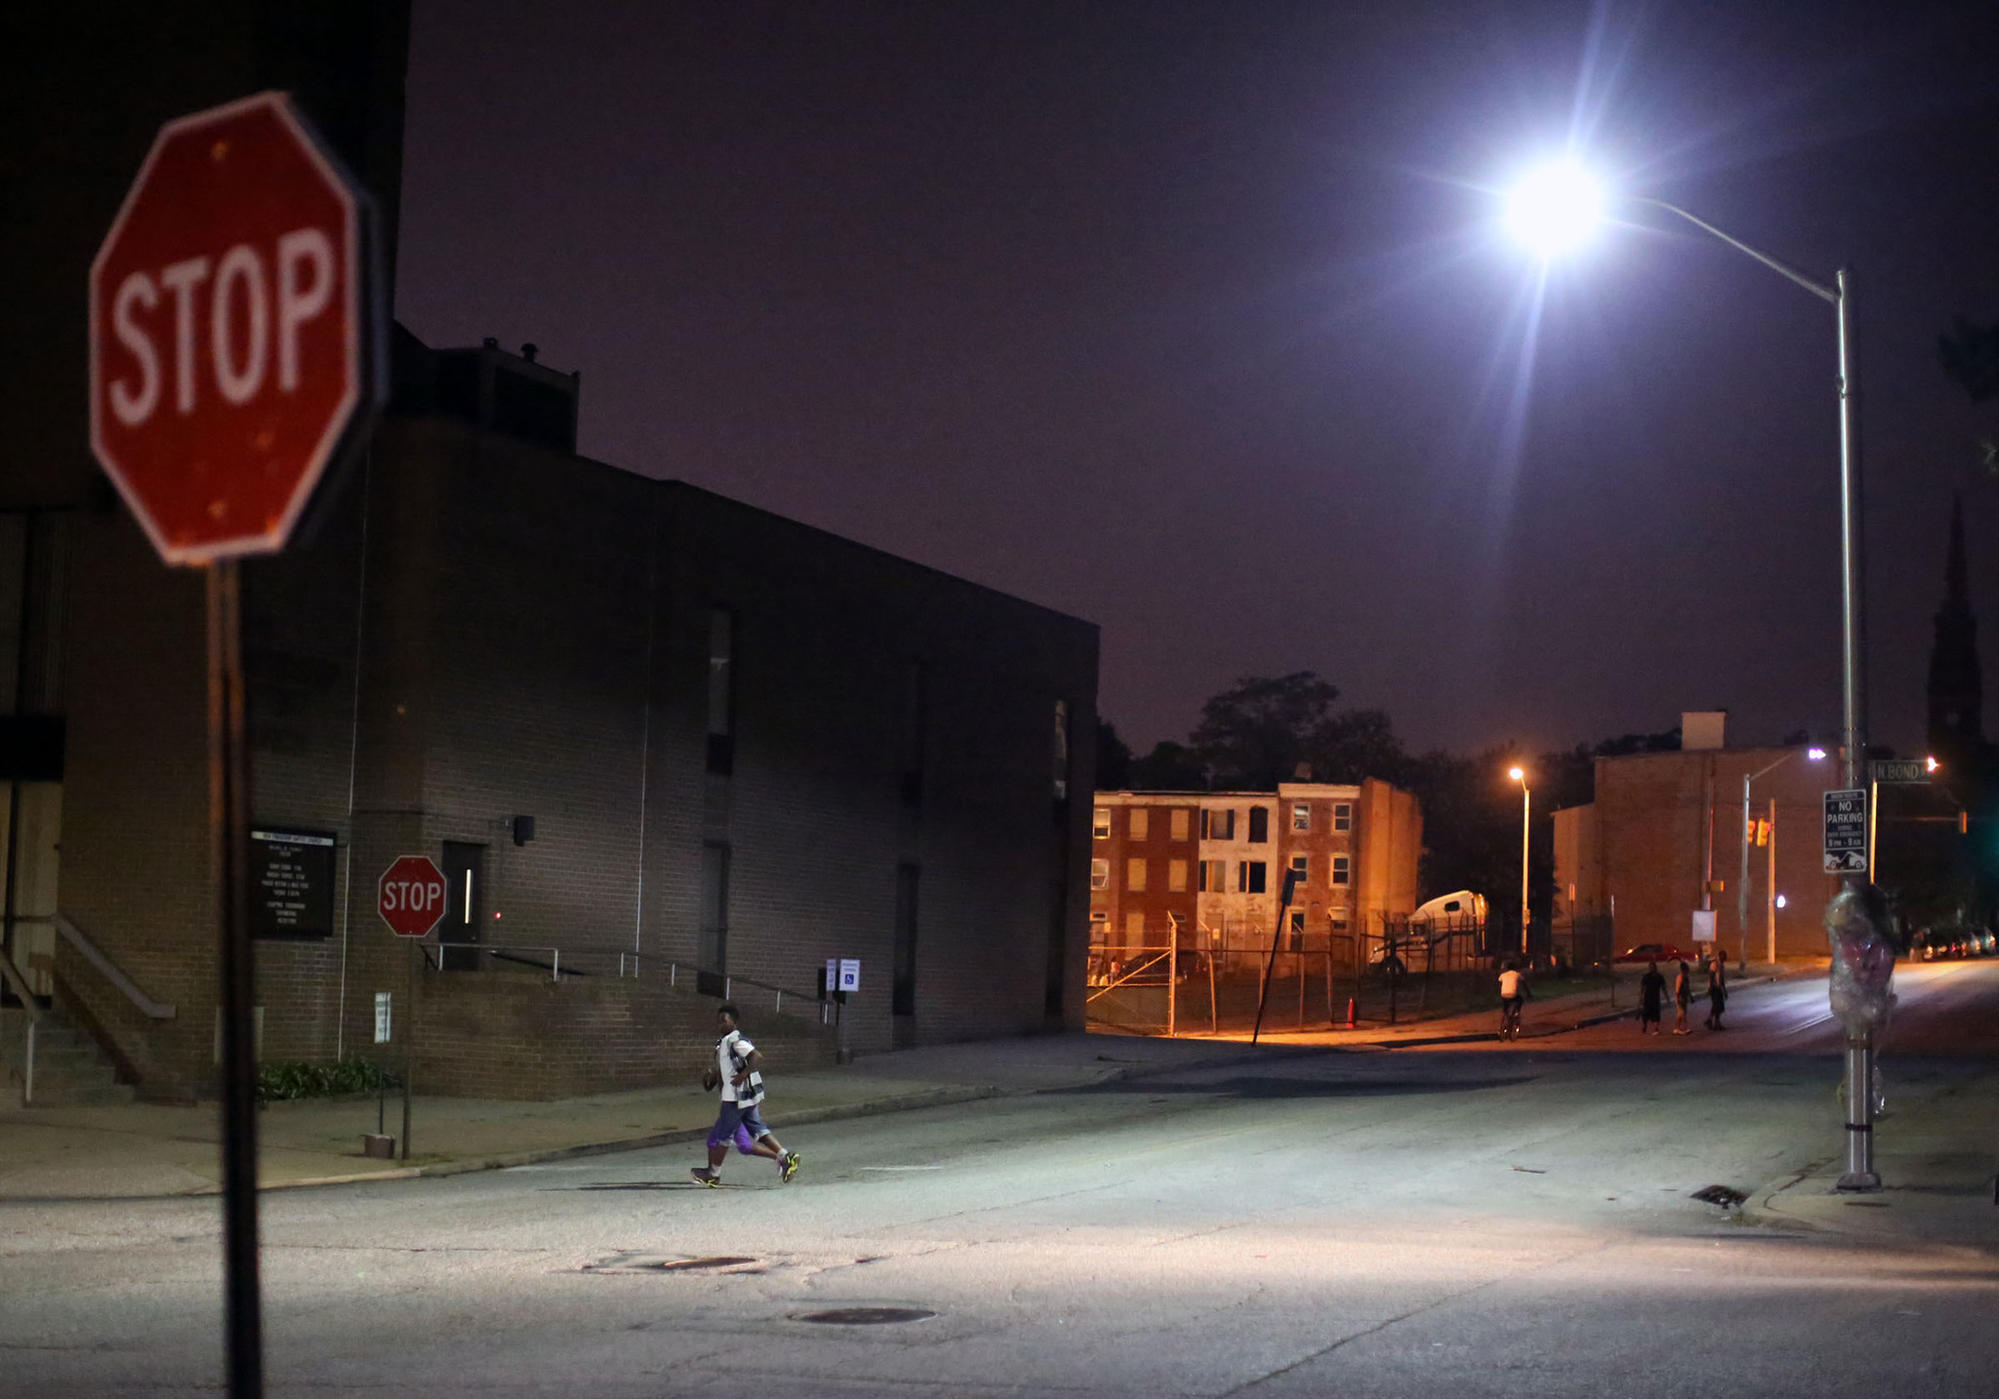 Baltimore Summer Youth Curfew Begins Friday Police Will Take Kids Home Instead Of To City Run